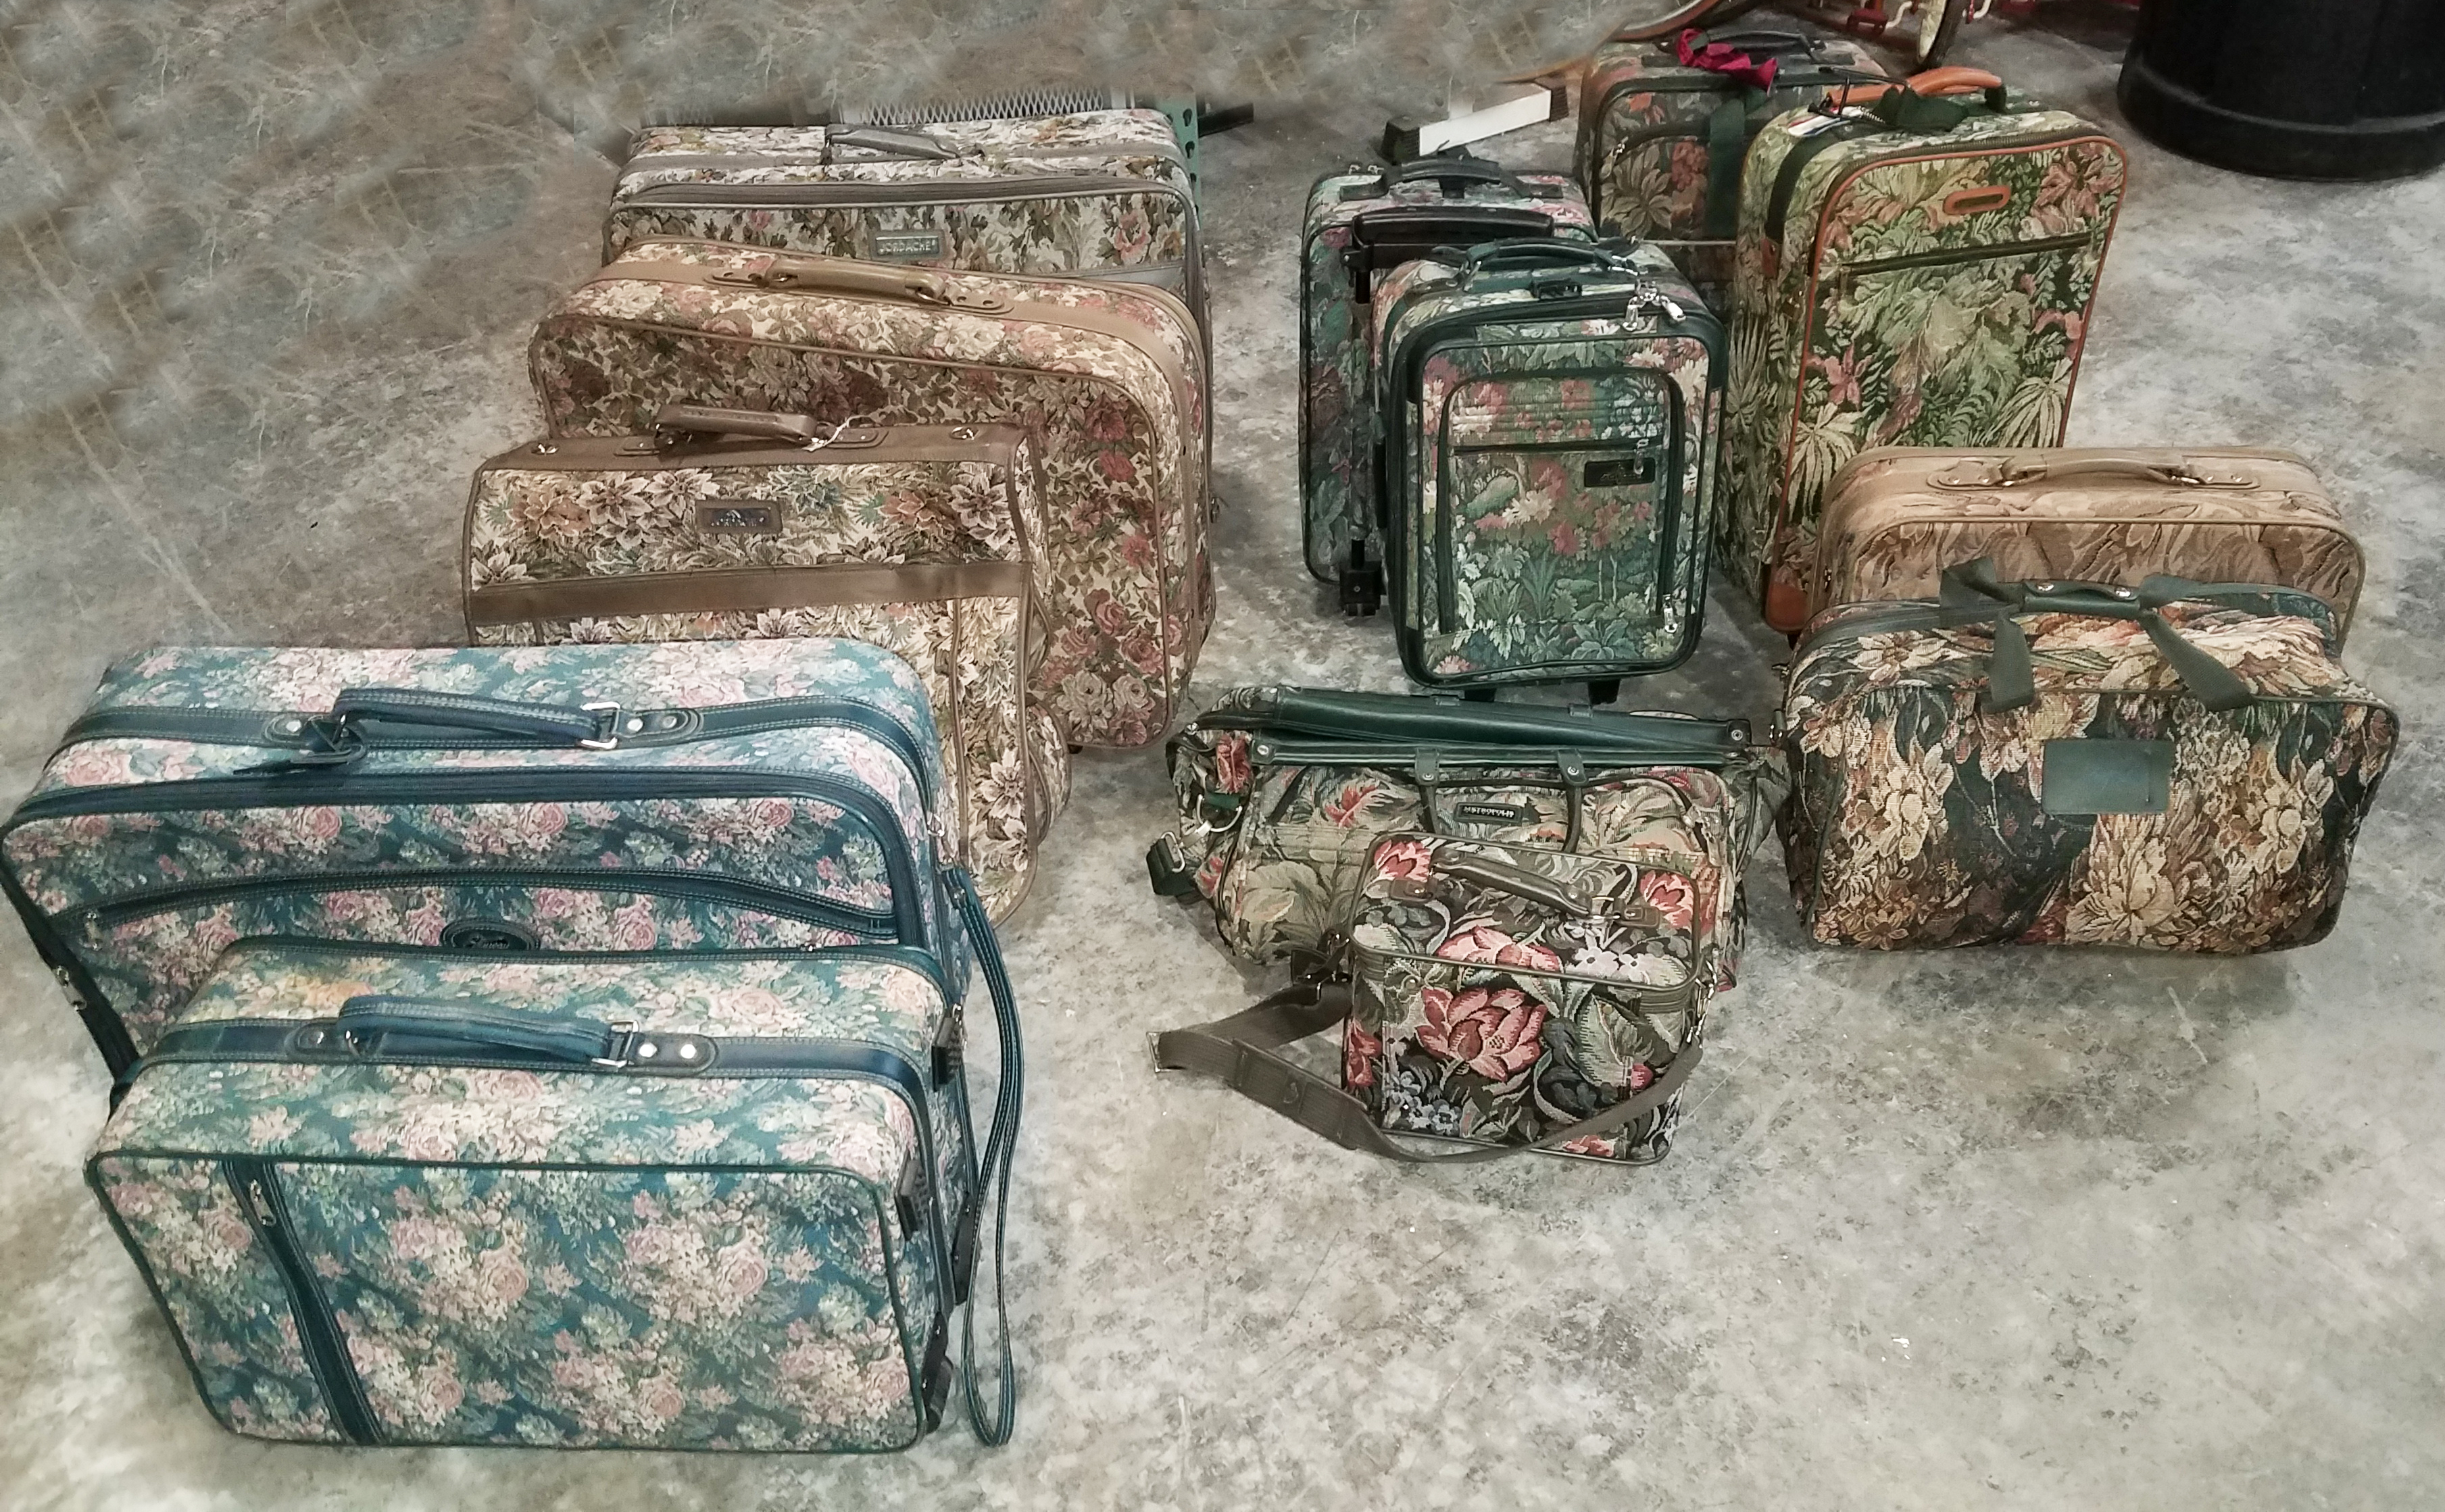 Luggage Floral Print Sets Nov 2018 14pcs